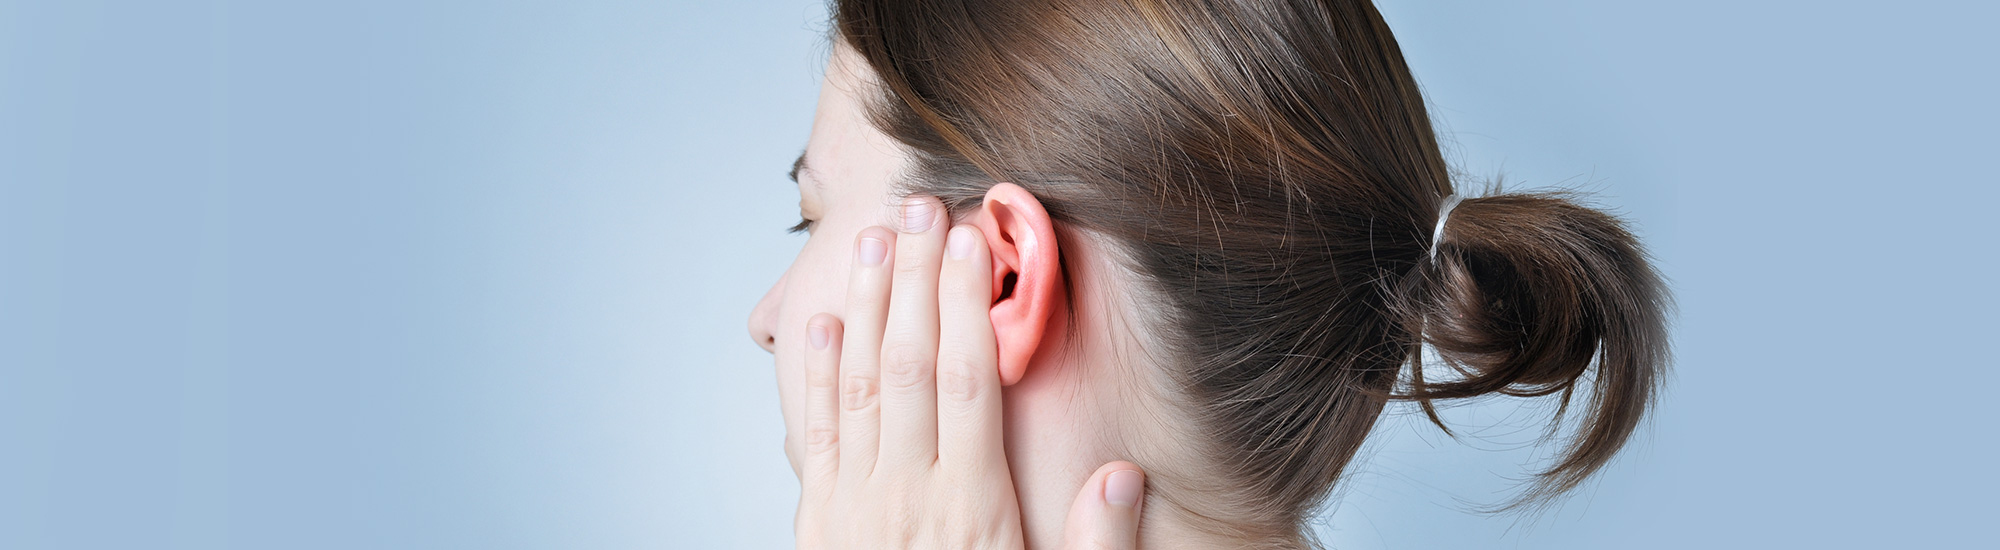 Ayurvedic treatment for Ear infection Diagnosis